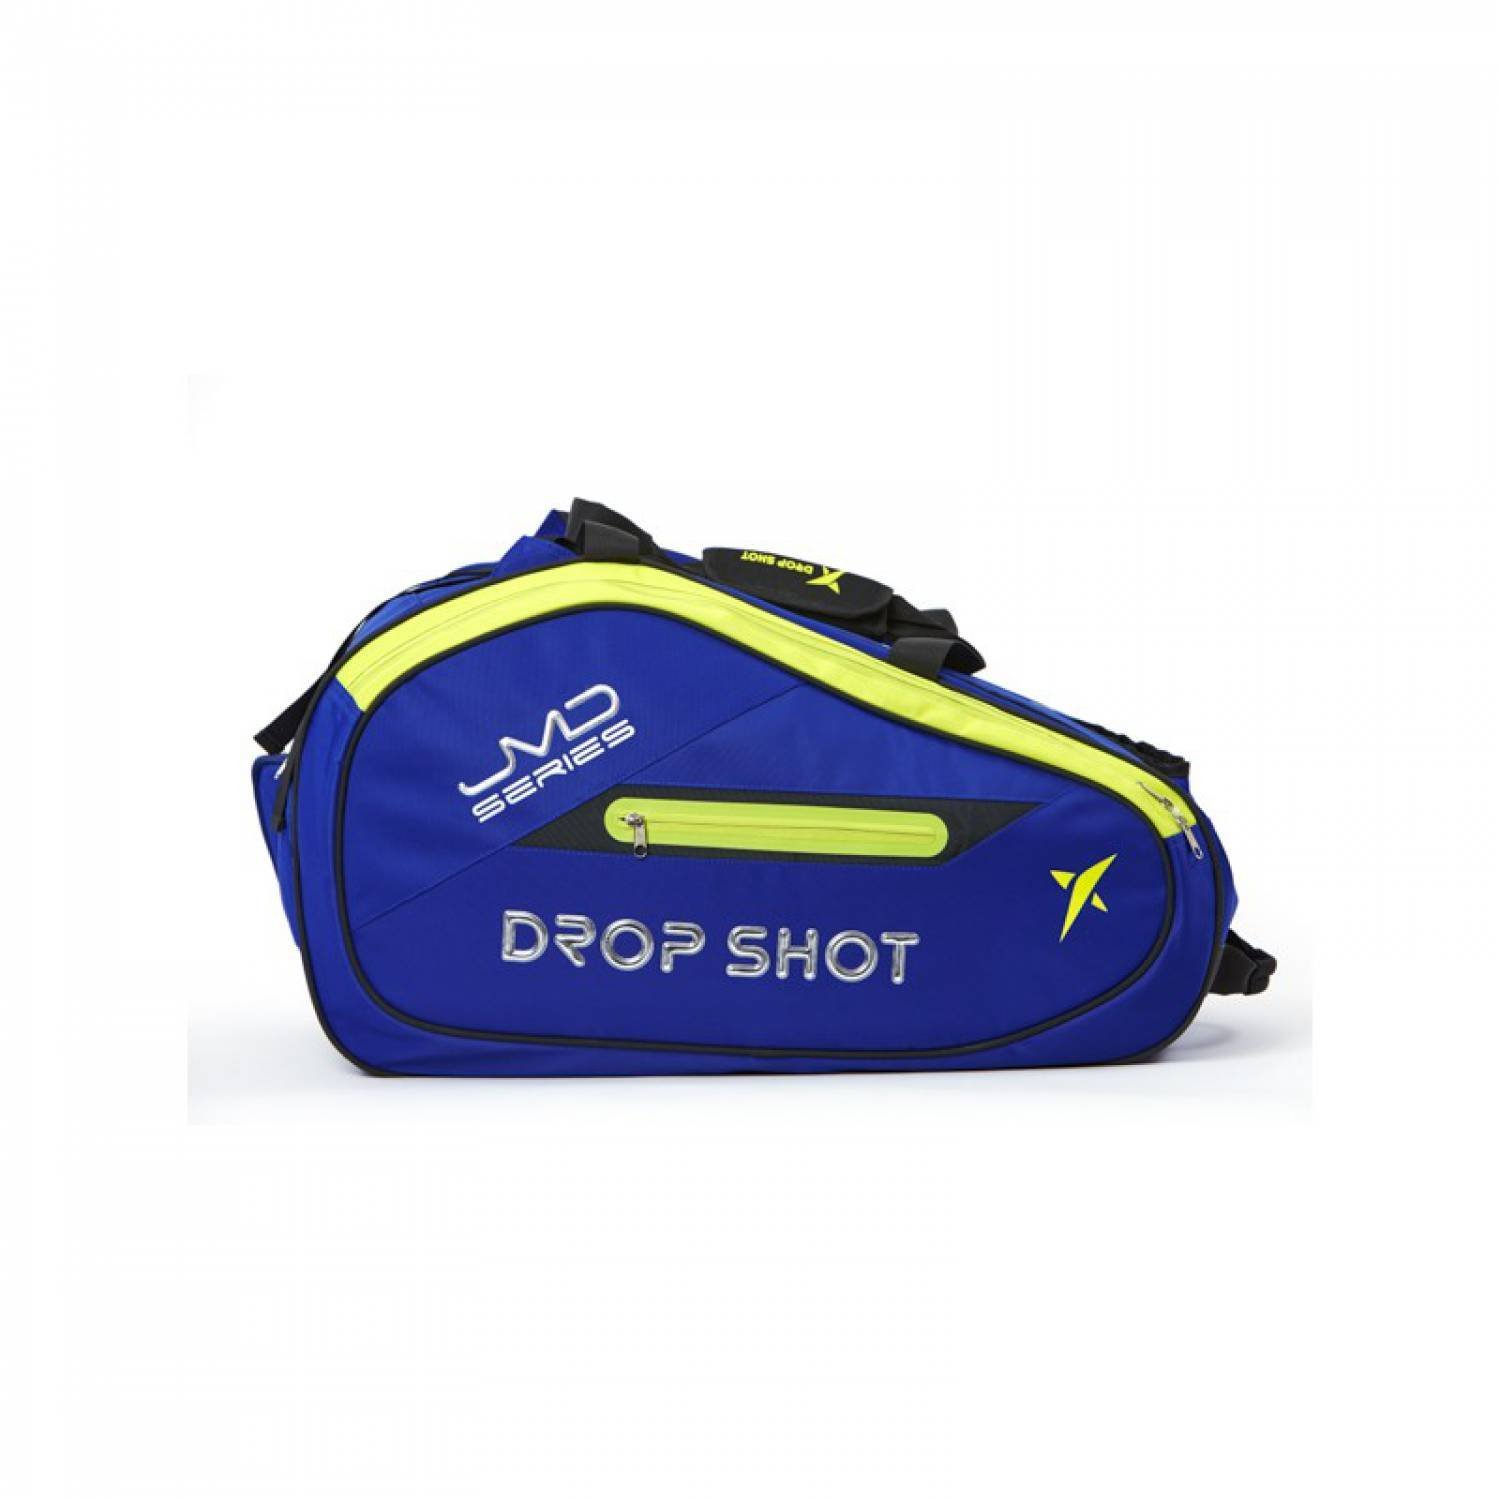 DROP SHOT - Pro Elite JMD, Color Amarillo,Azul